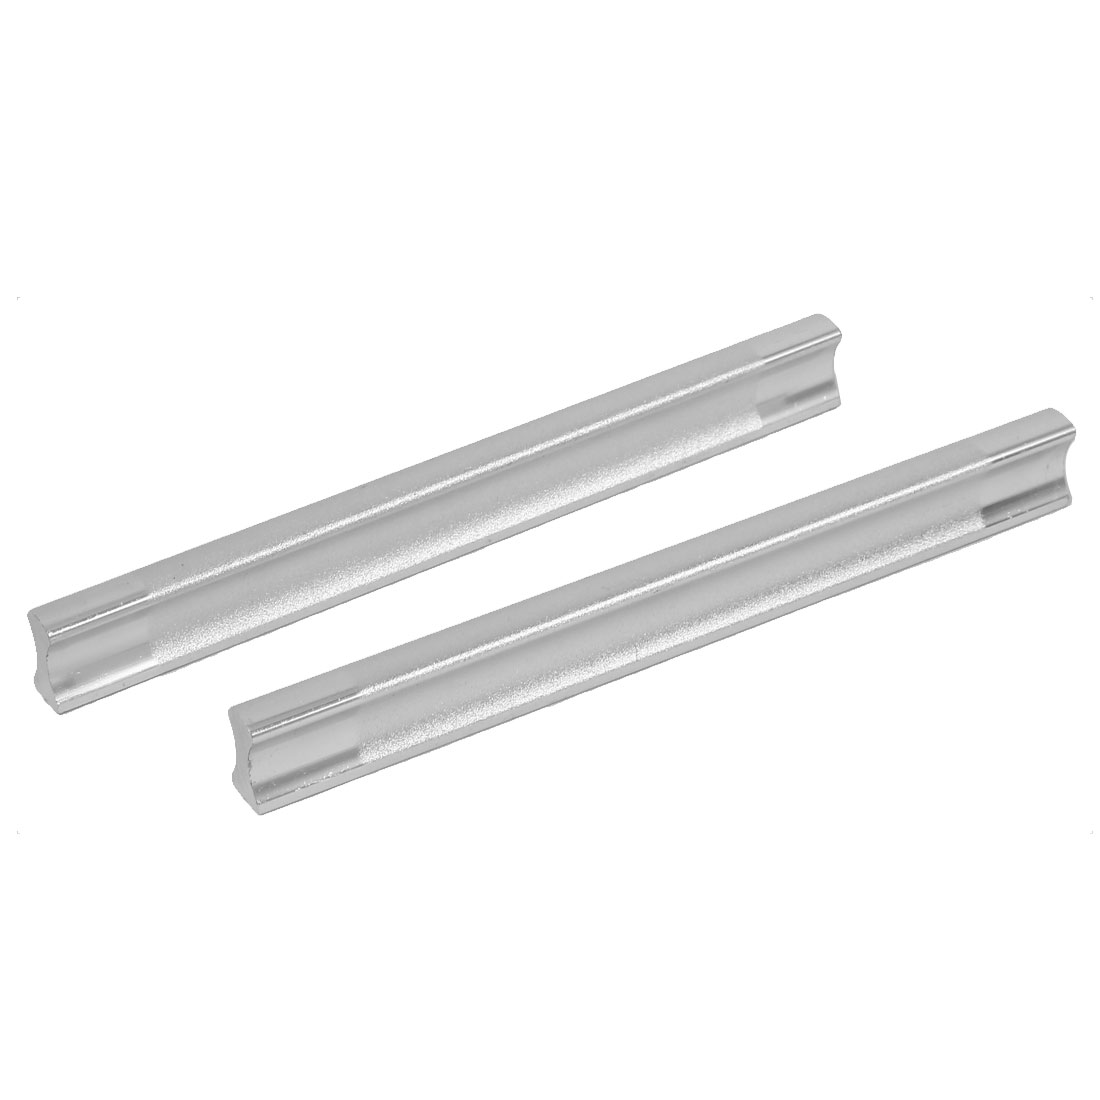 128mm Mount Distance Furniture Hardware Door Pull Handle Silver Tone 2pcs